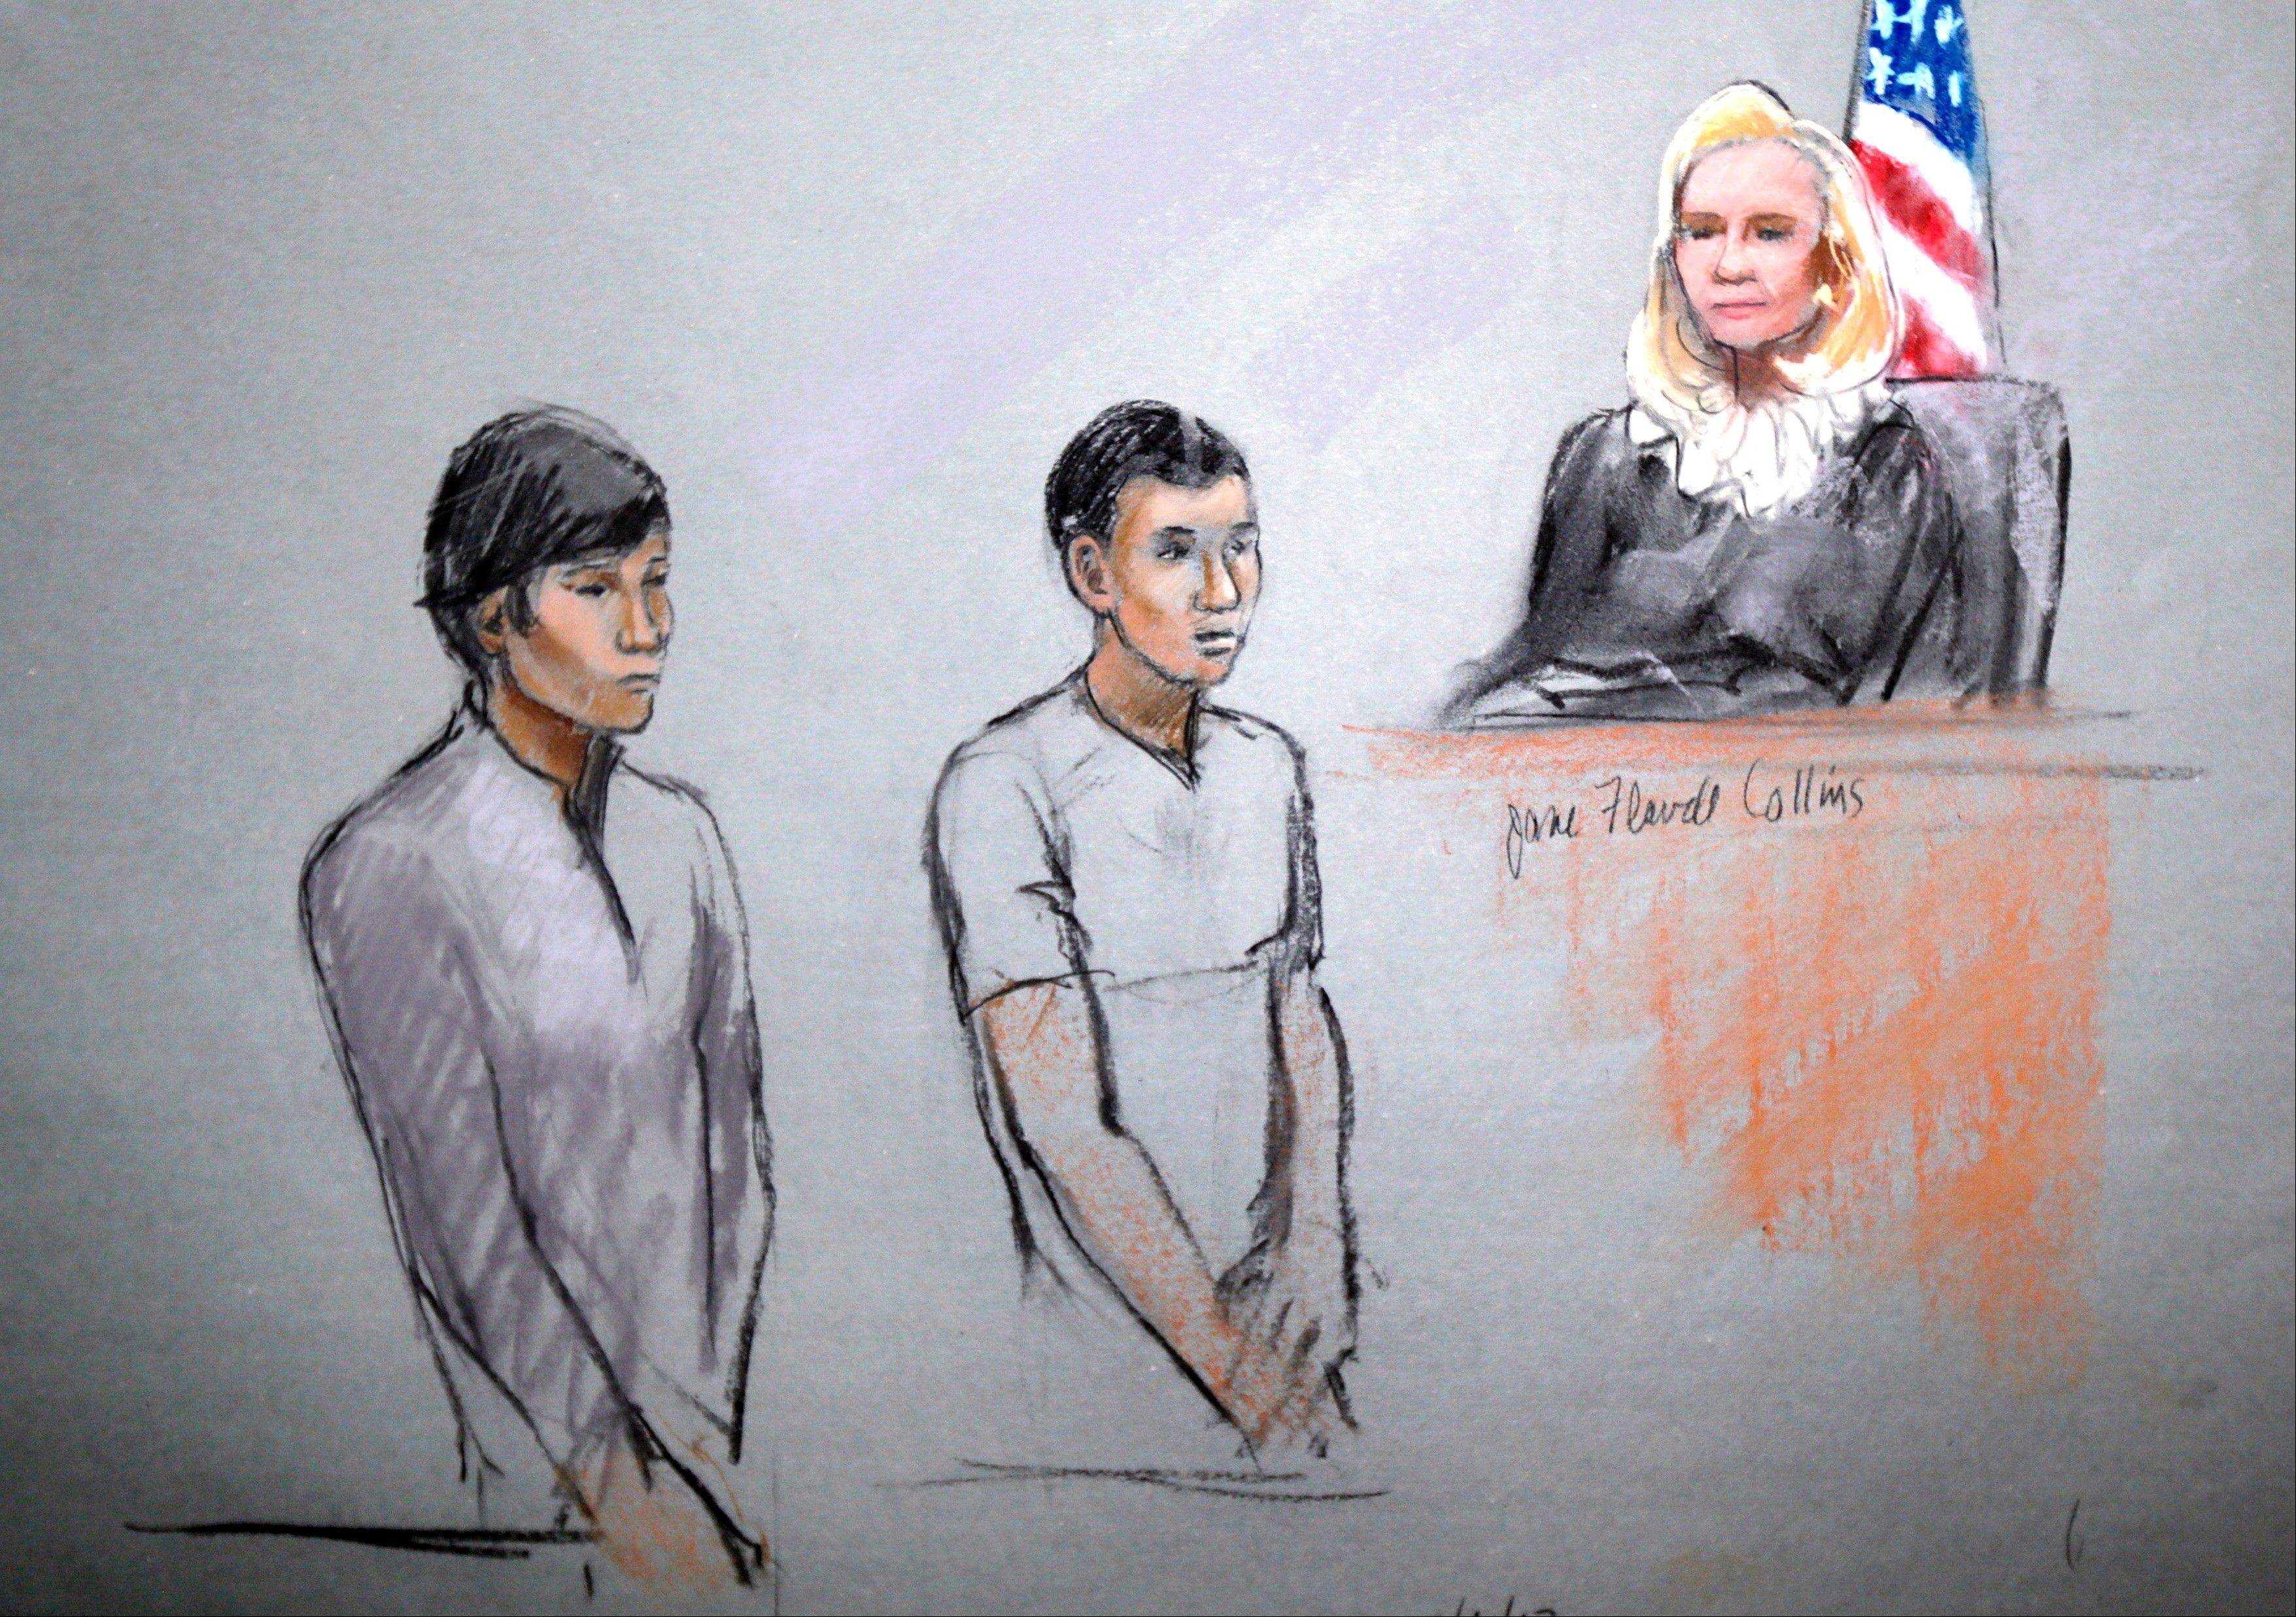 FILE--This courtroom sketch of May 1, 2013 by artist Jane Flavell Collins shows defendants Dias Kadyrbayev, left, and Azamat Tazhayakov appearing in front of Federal Magistrate Marianne Bowler at the Moakley Federal Courthouse in Boston. The two college friends of Boston Marathon bombing suspect Dzhokhar Tsarnaev have been indicted Thursday, Aug. 8, 2013 on obstruction conspiracy charges. Dias Kadyrbayev and Azamat Tazhayakov are accused of trying to dispose of evidence from Dzhokhar Tsarnaev's dorm room. The two 19-year-olds have been detained since they were initially charged in May. If convicted, they face up to 20 years in prison.